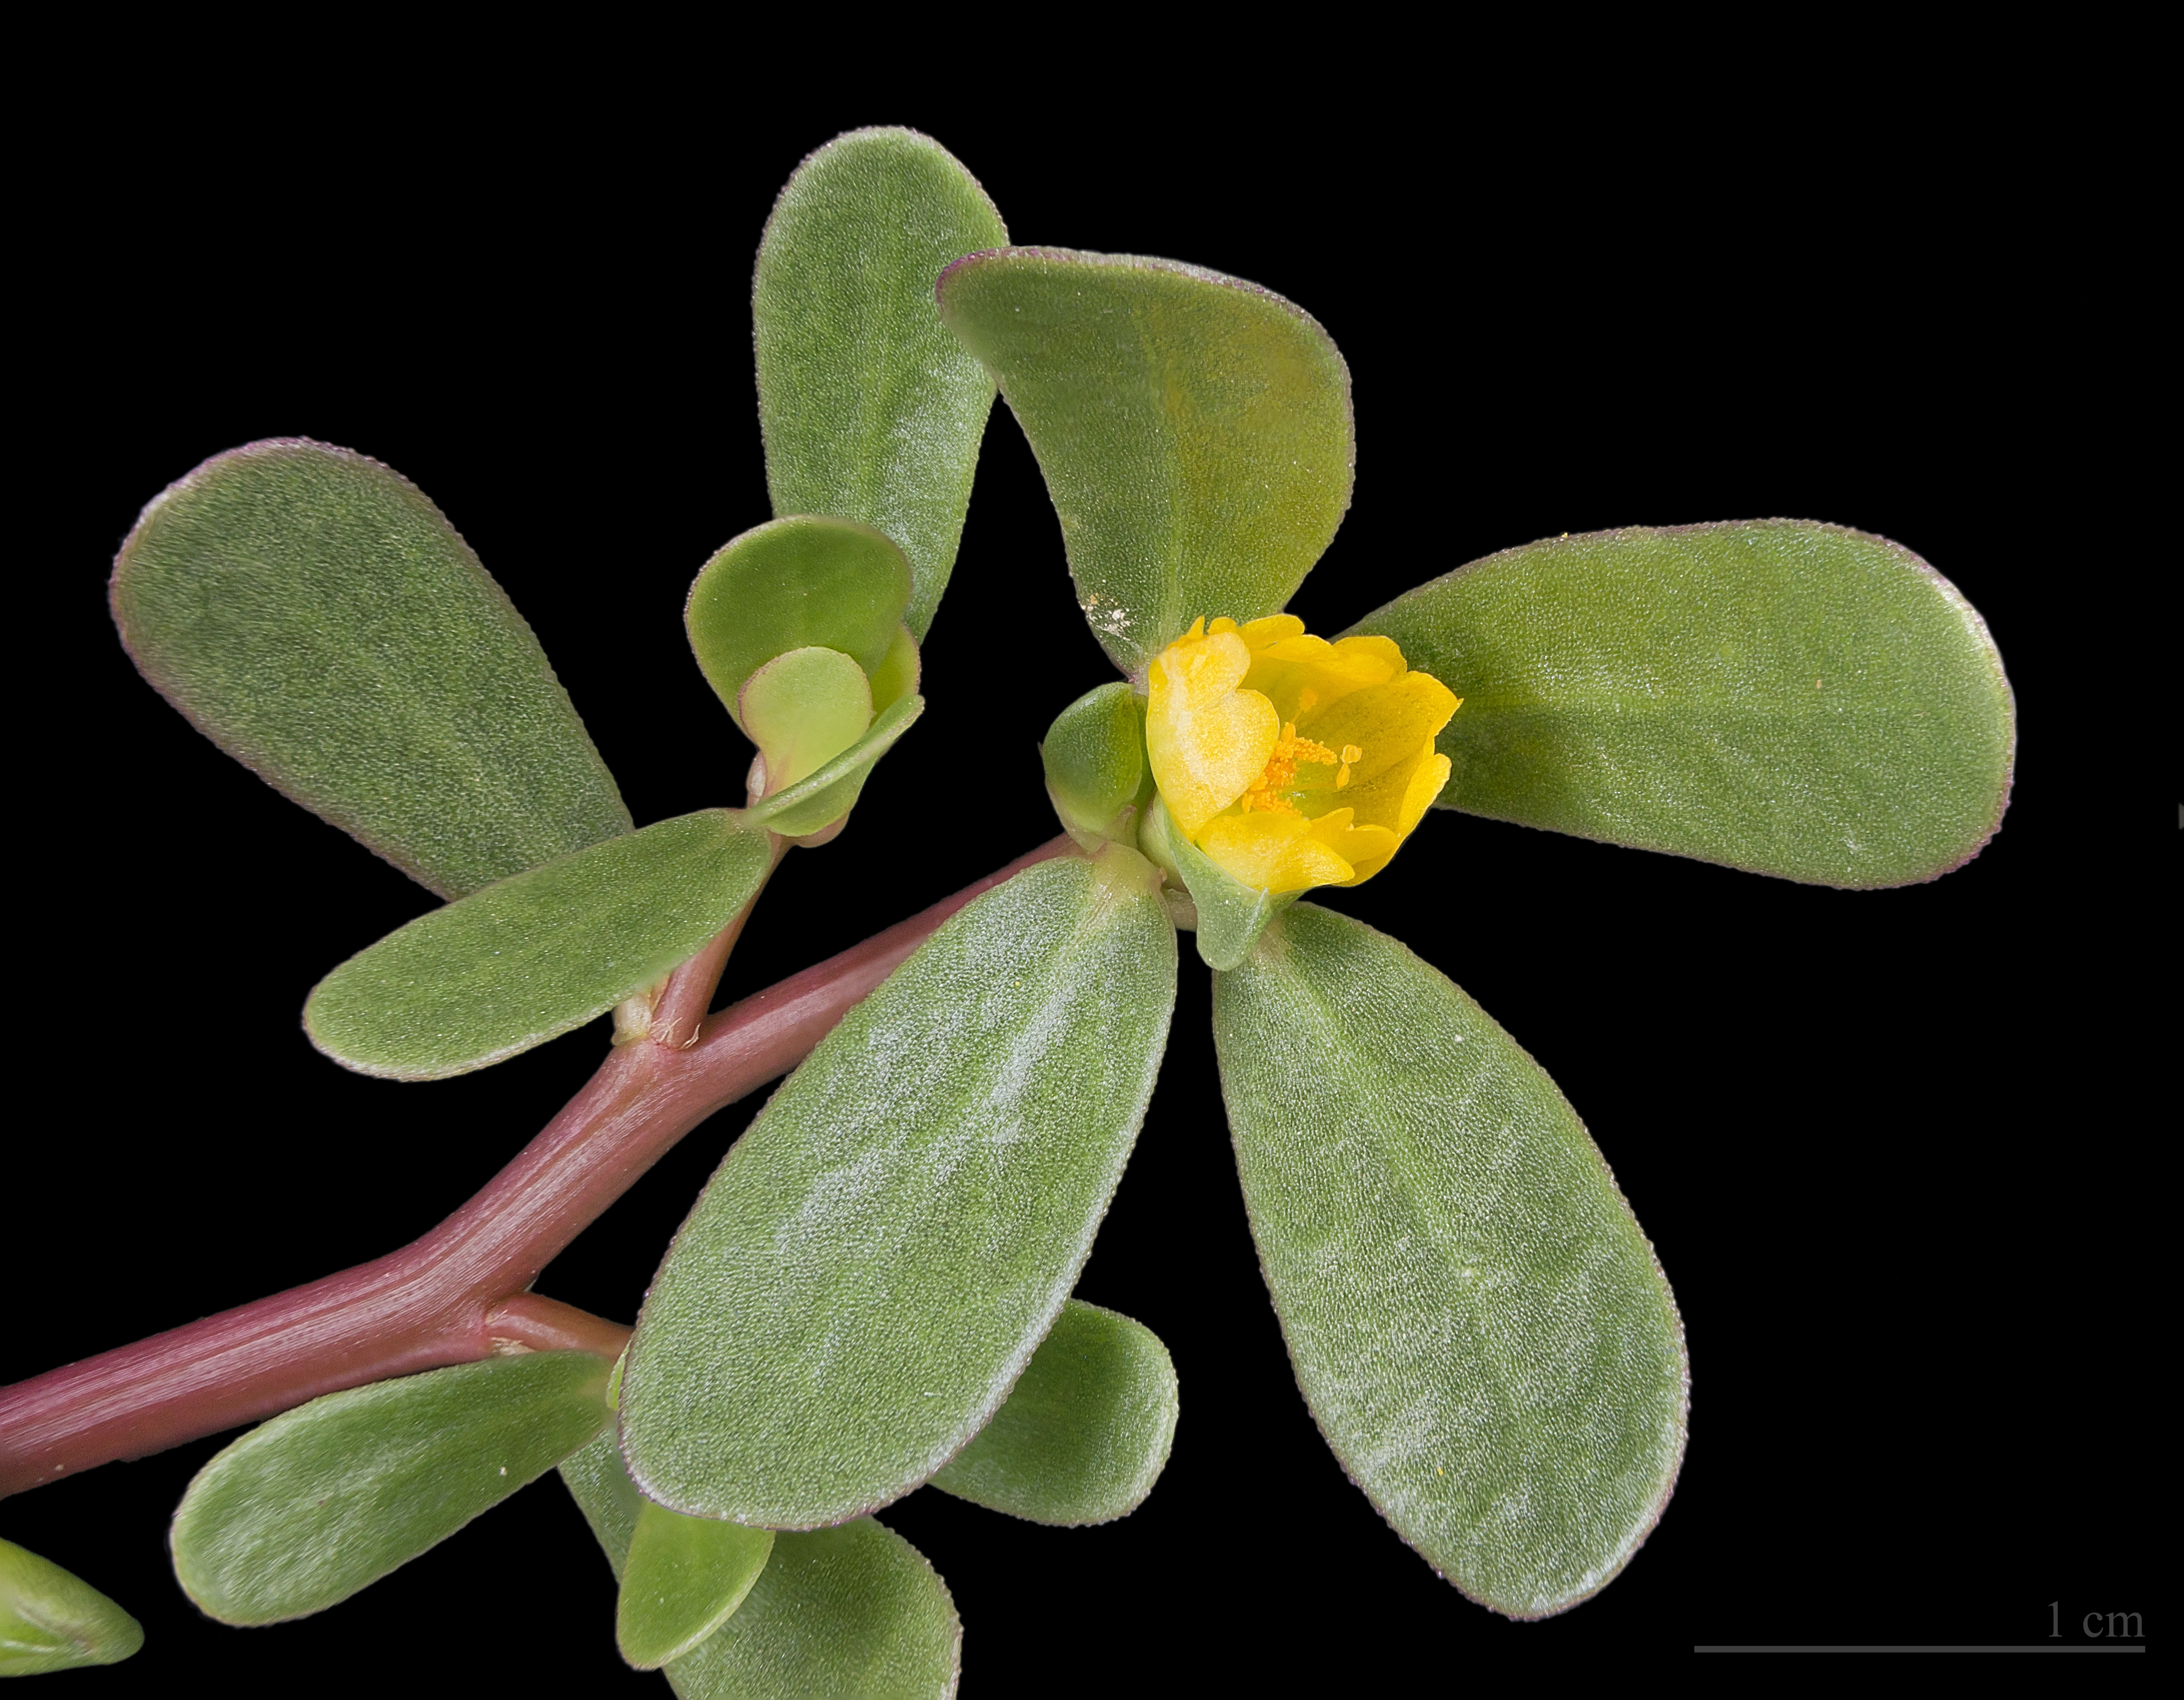 Depiction of Portulaca oleracea